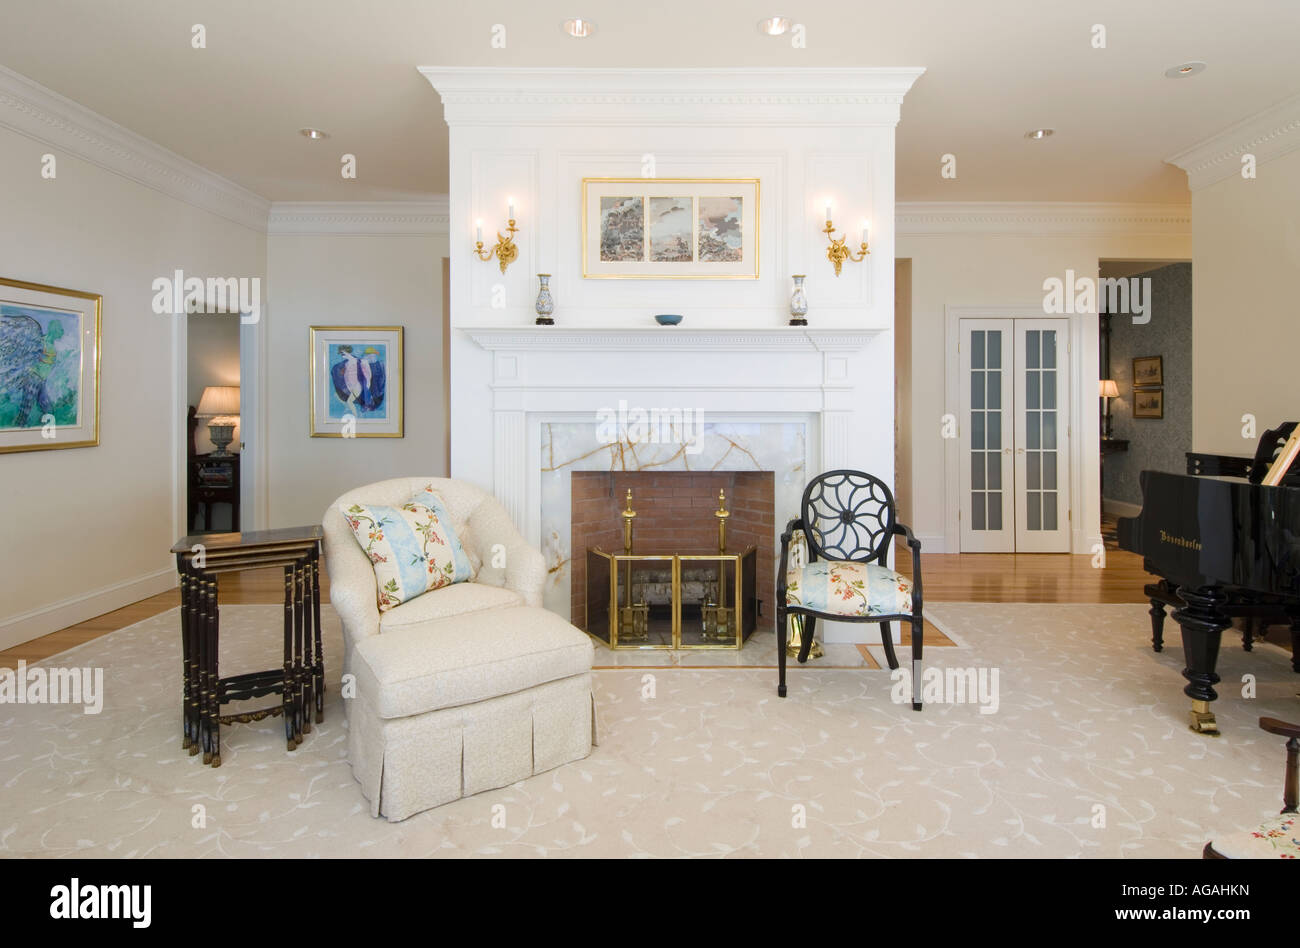 Living Room Fireplace Grand Piano Stock Photos & Living Room ...